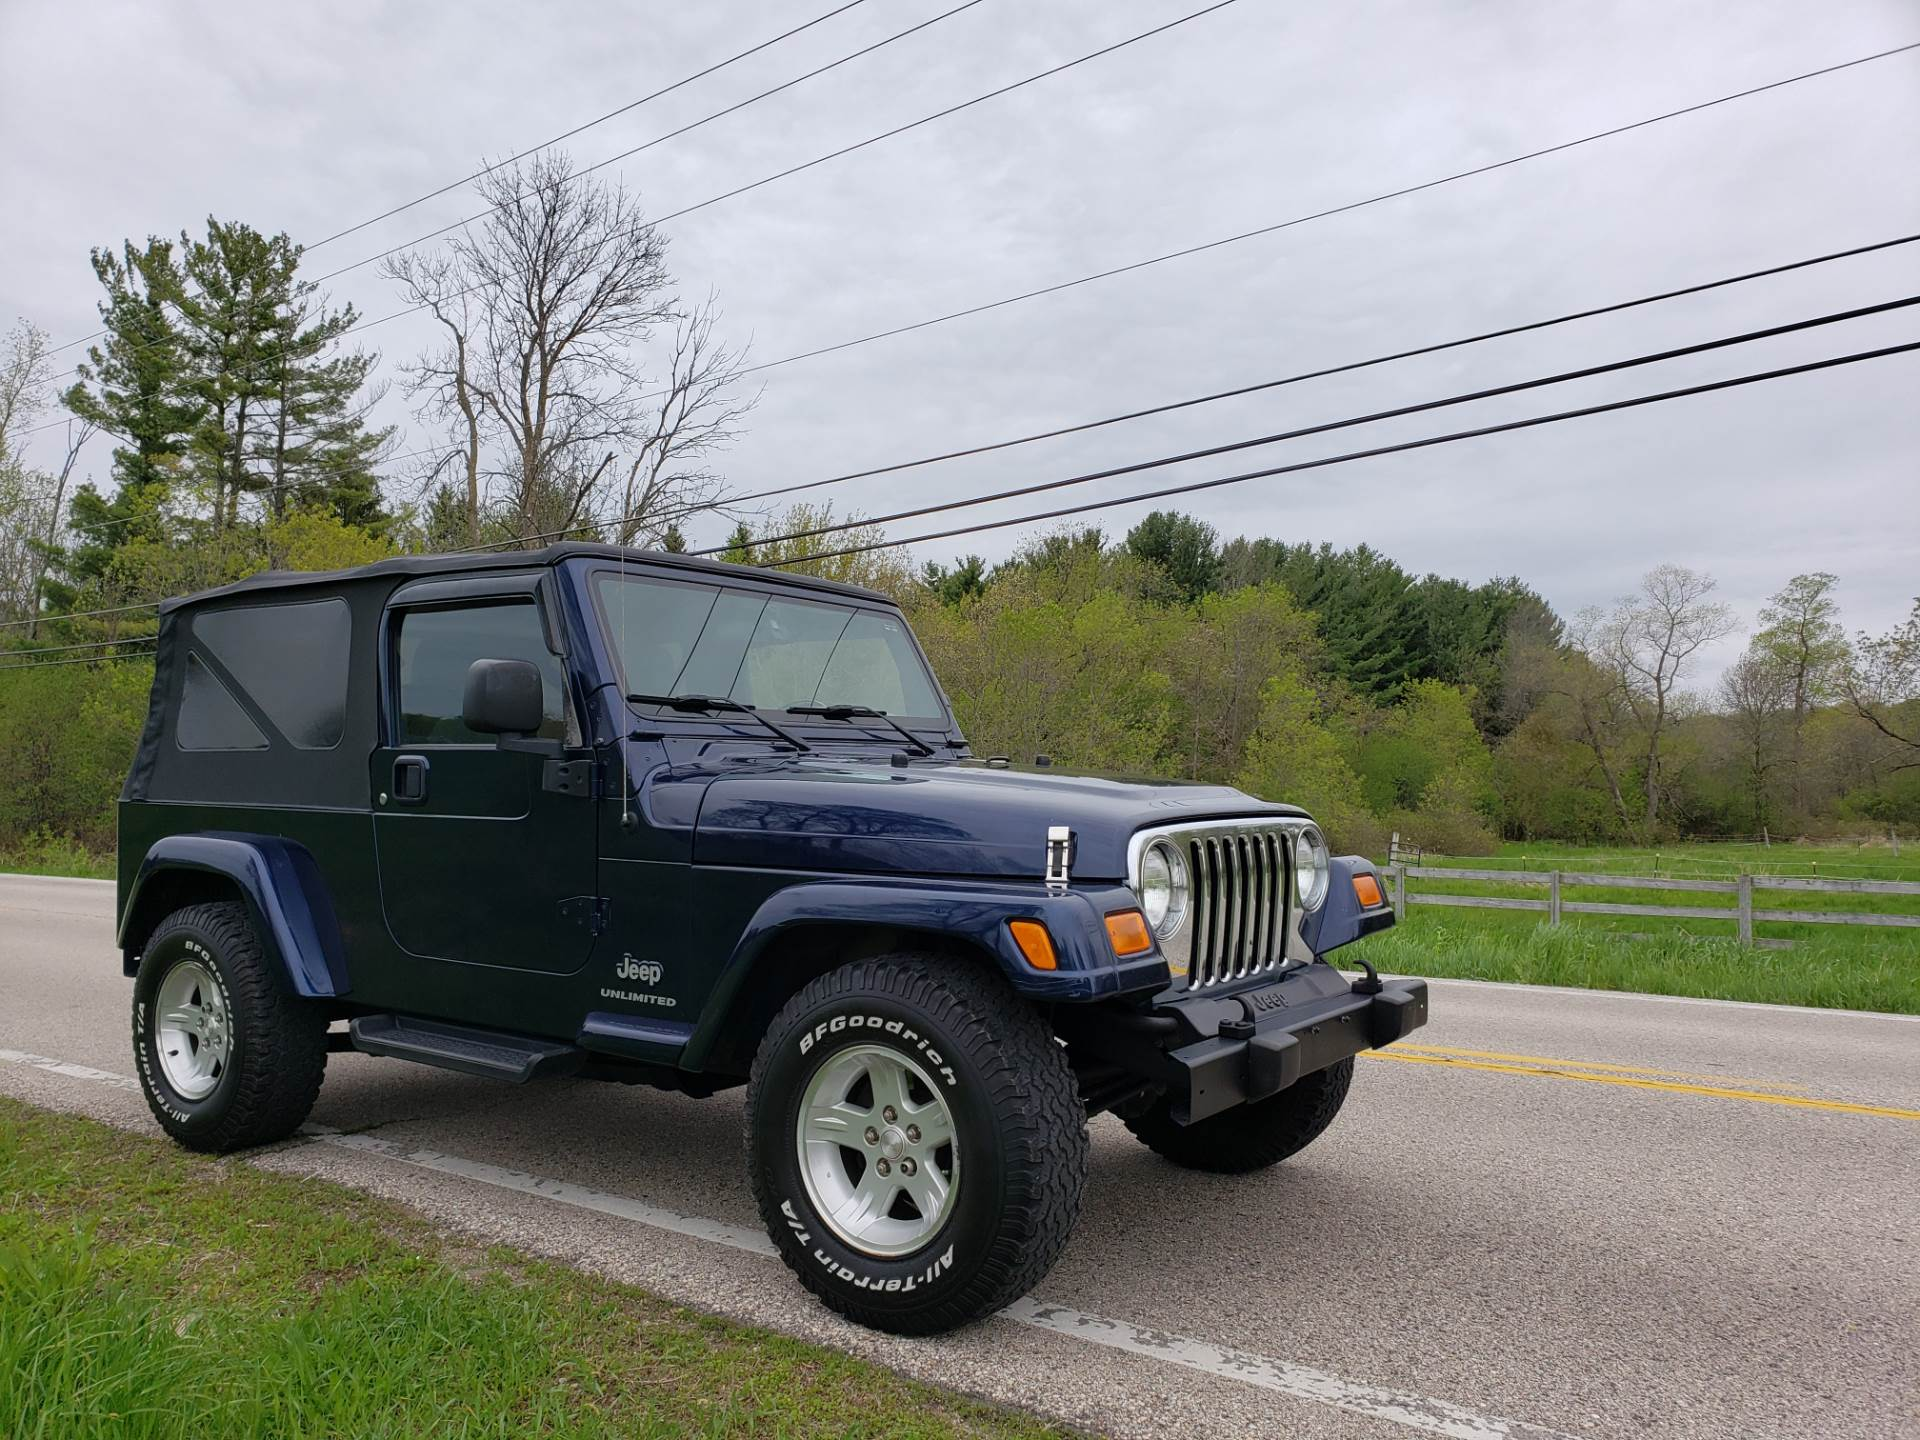 2006 Jeep Wrangler Unlimited 2dr SUV 4WD in Big Bend, Wisconsin - Photo 36